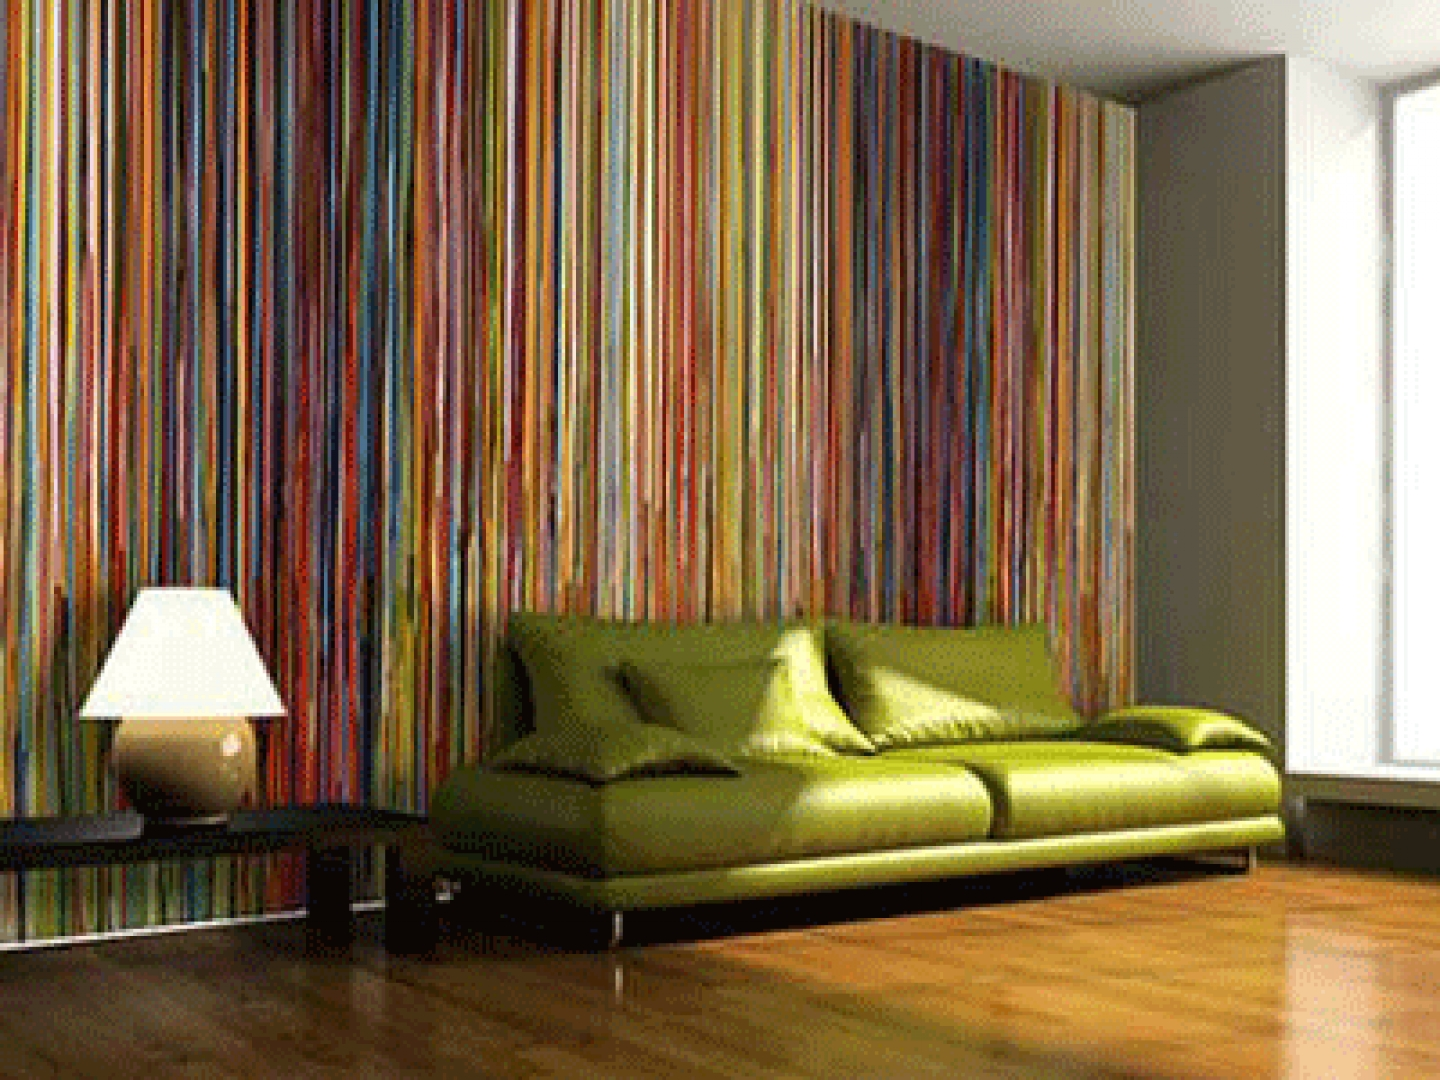 30 modern home decor ideas the wow style - Home decorating ideas living room walls ...